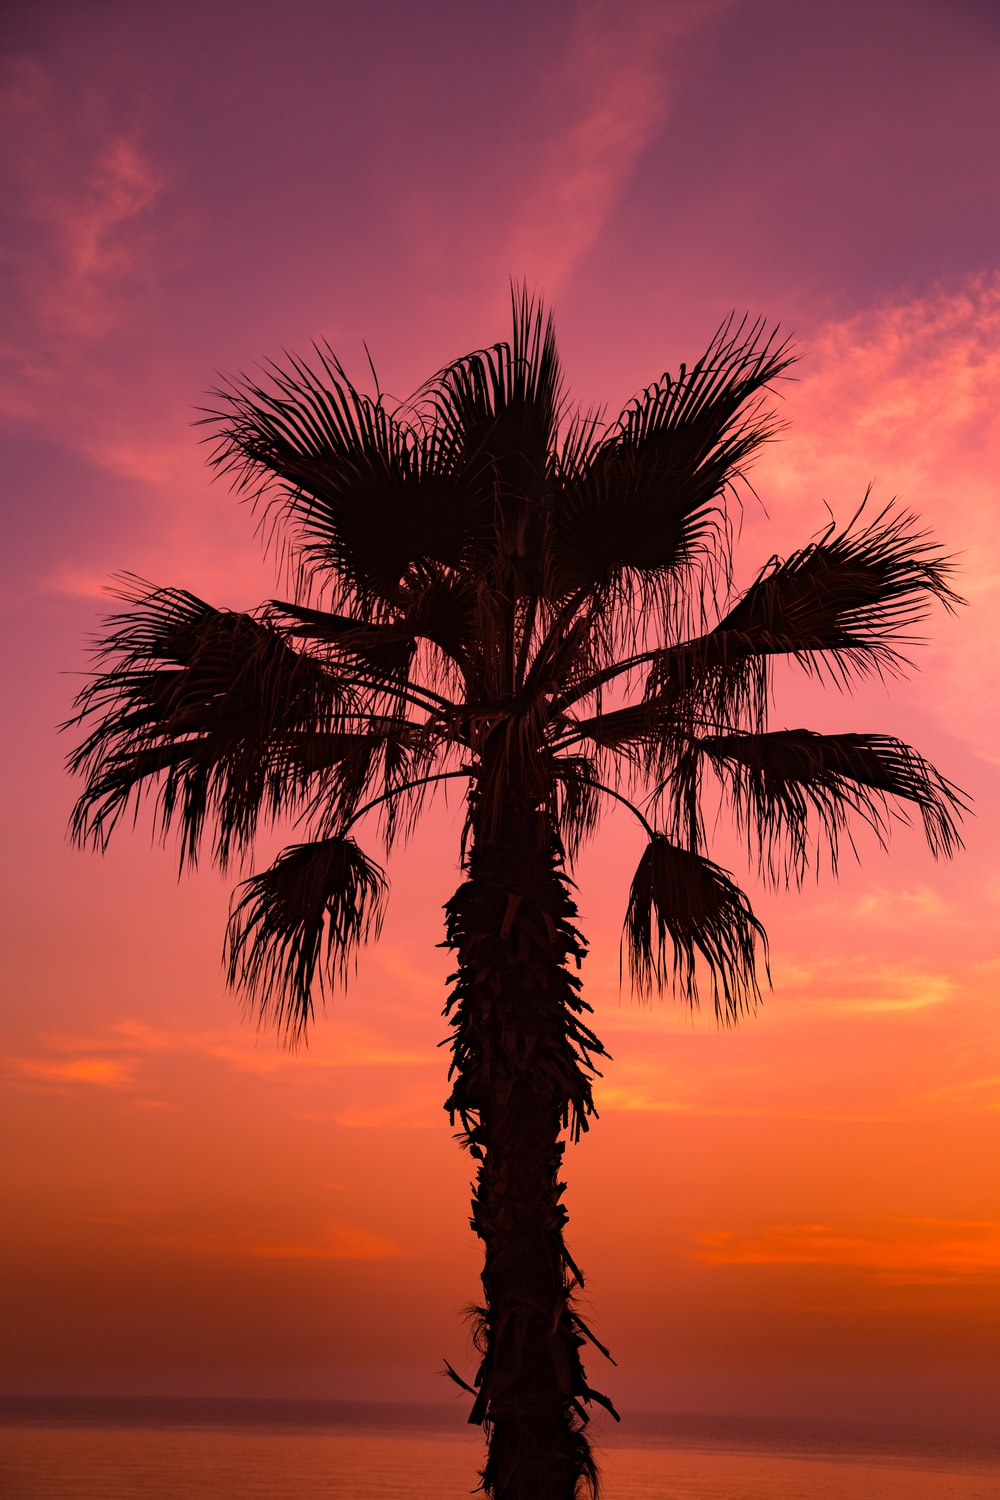 sago palm tree under pink sky at sunsetr